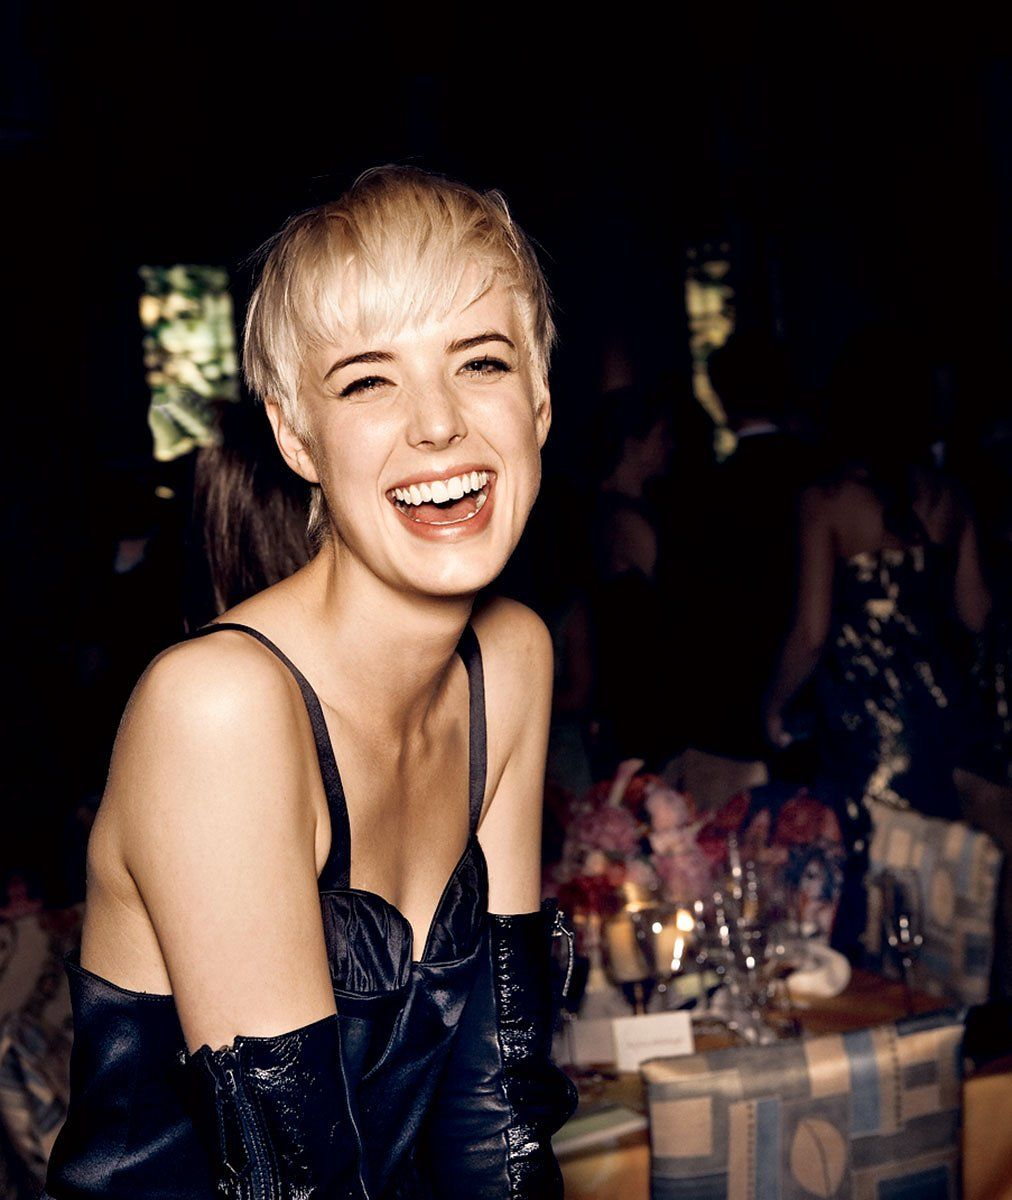 Boy hairstyle in short hair the  best boy cuts of all time from jean seberg to keira